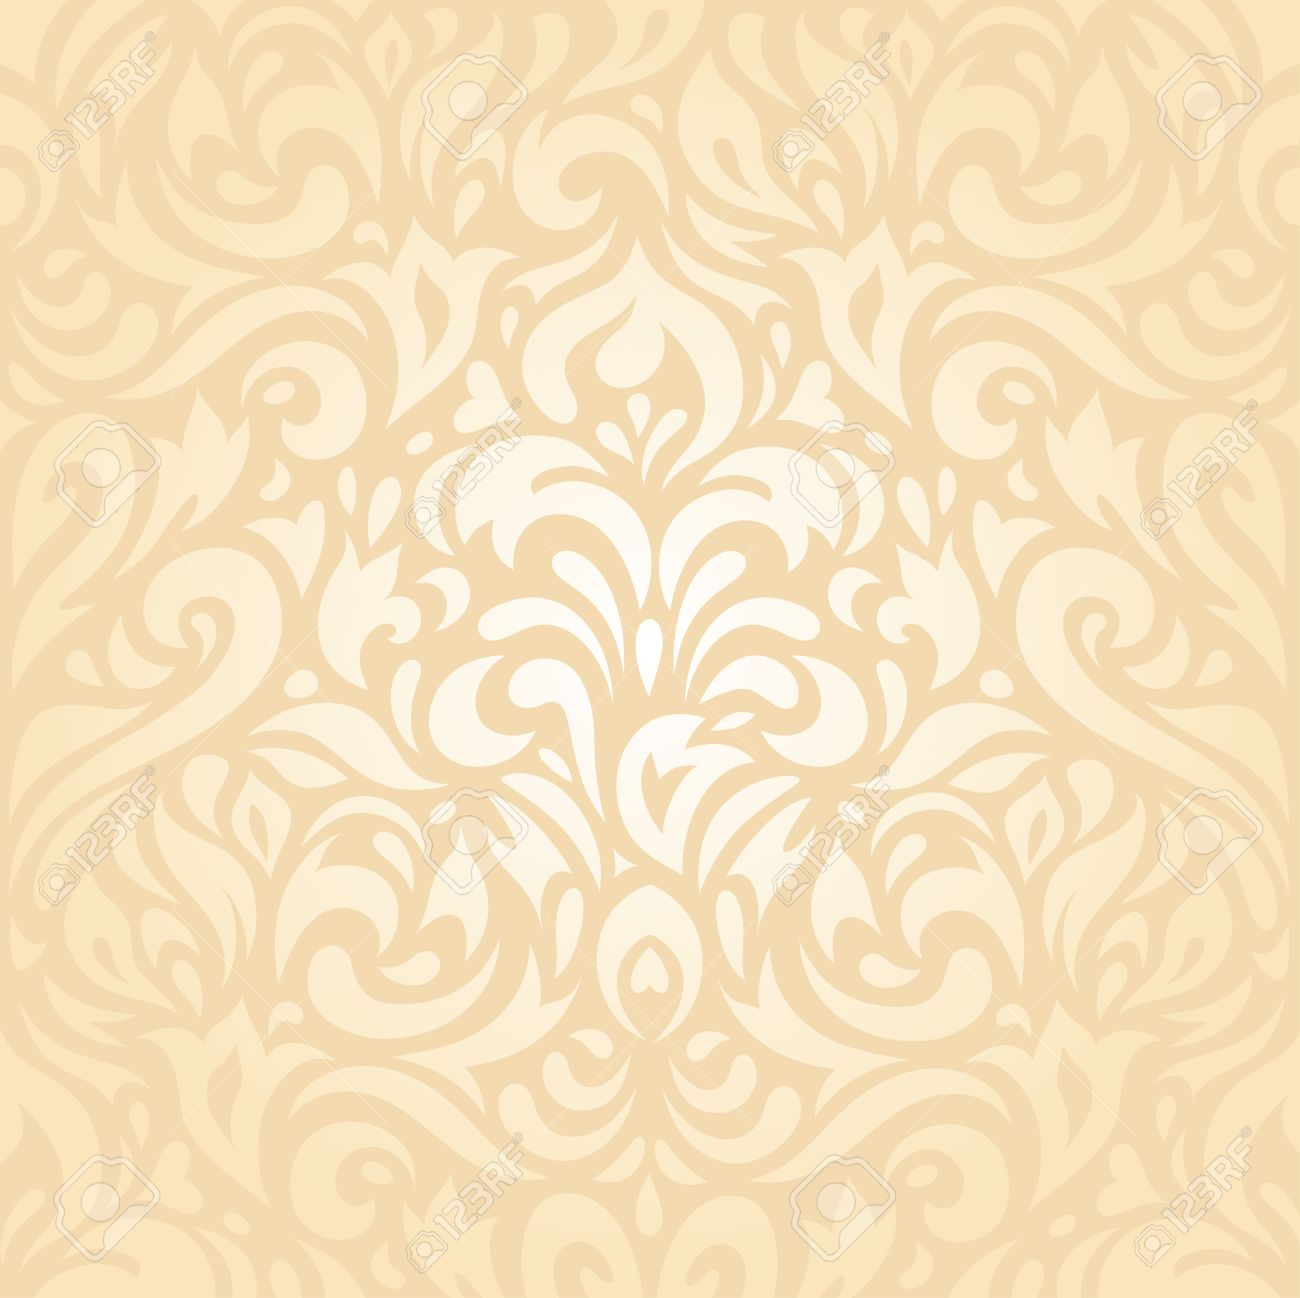 Decorative Wallpaper Design Stock